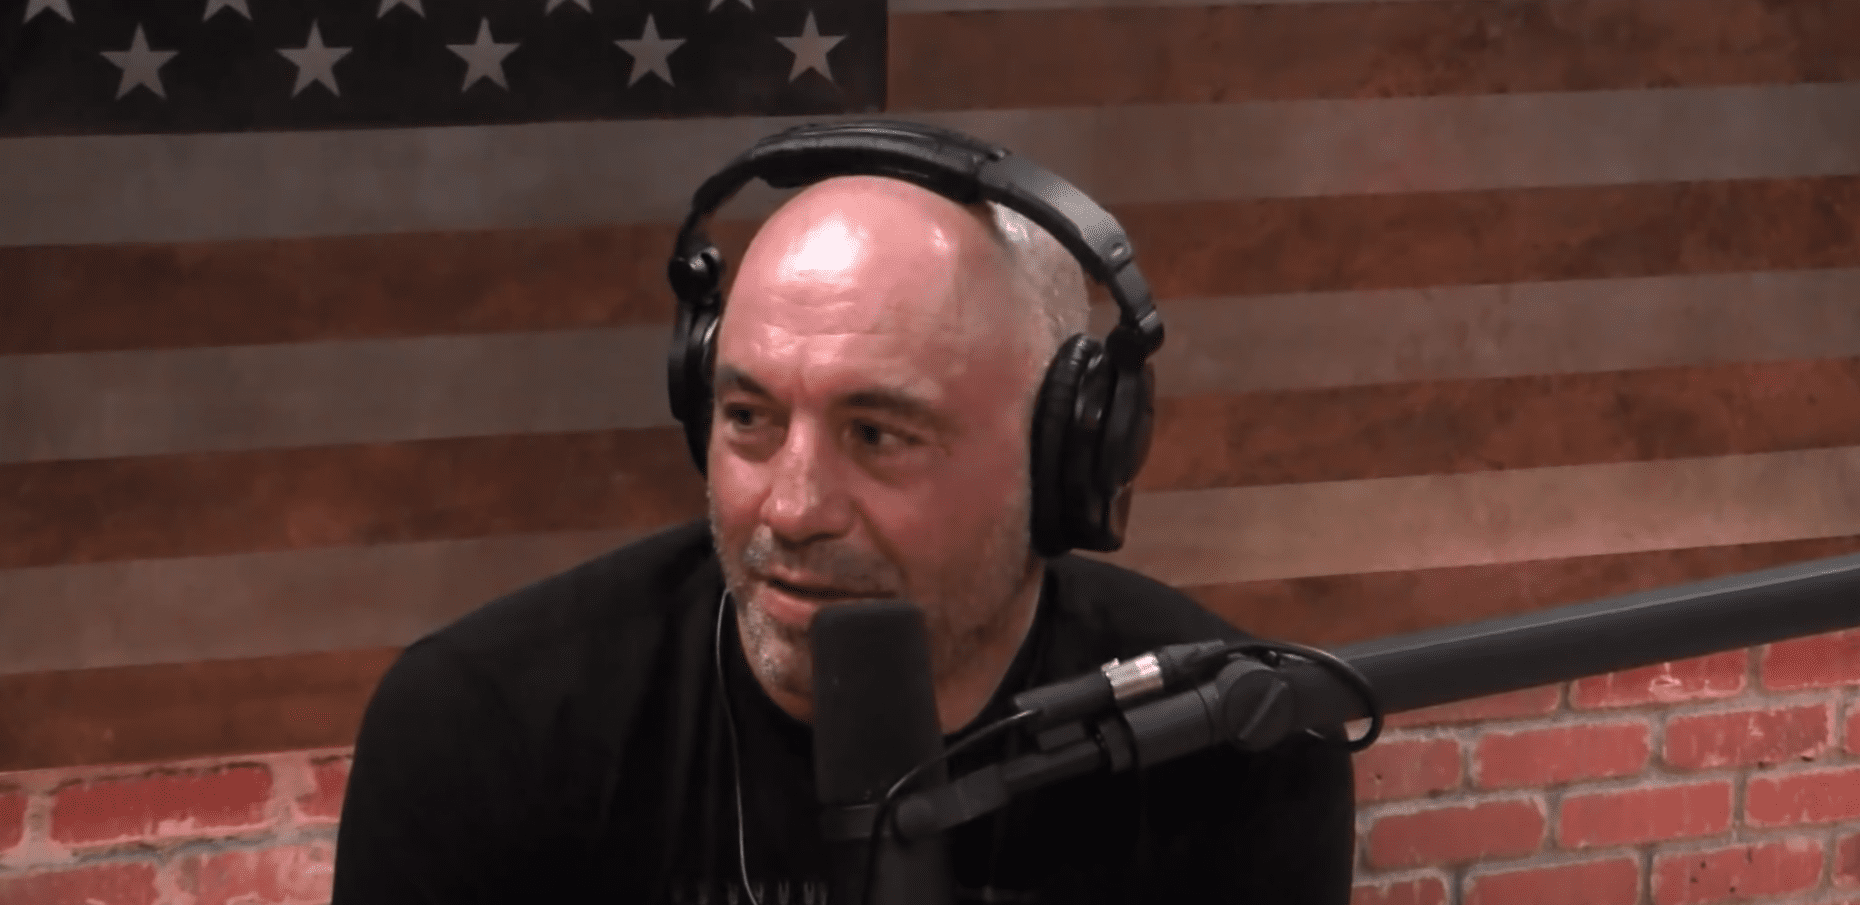 Joe Rogan Debate Moderator On The Media Wnyc Studios Joe rogan was trending on twitter as people tried yet again to have the world's most popular podcaster canceled. joe rogan debate moderator on the